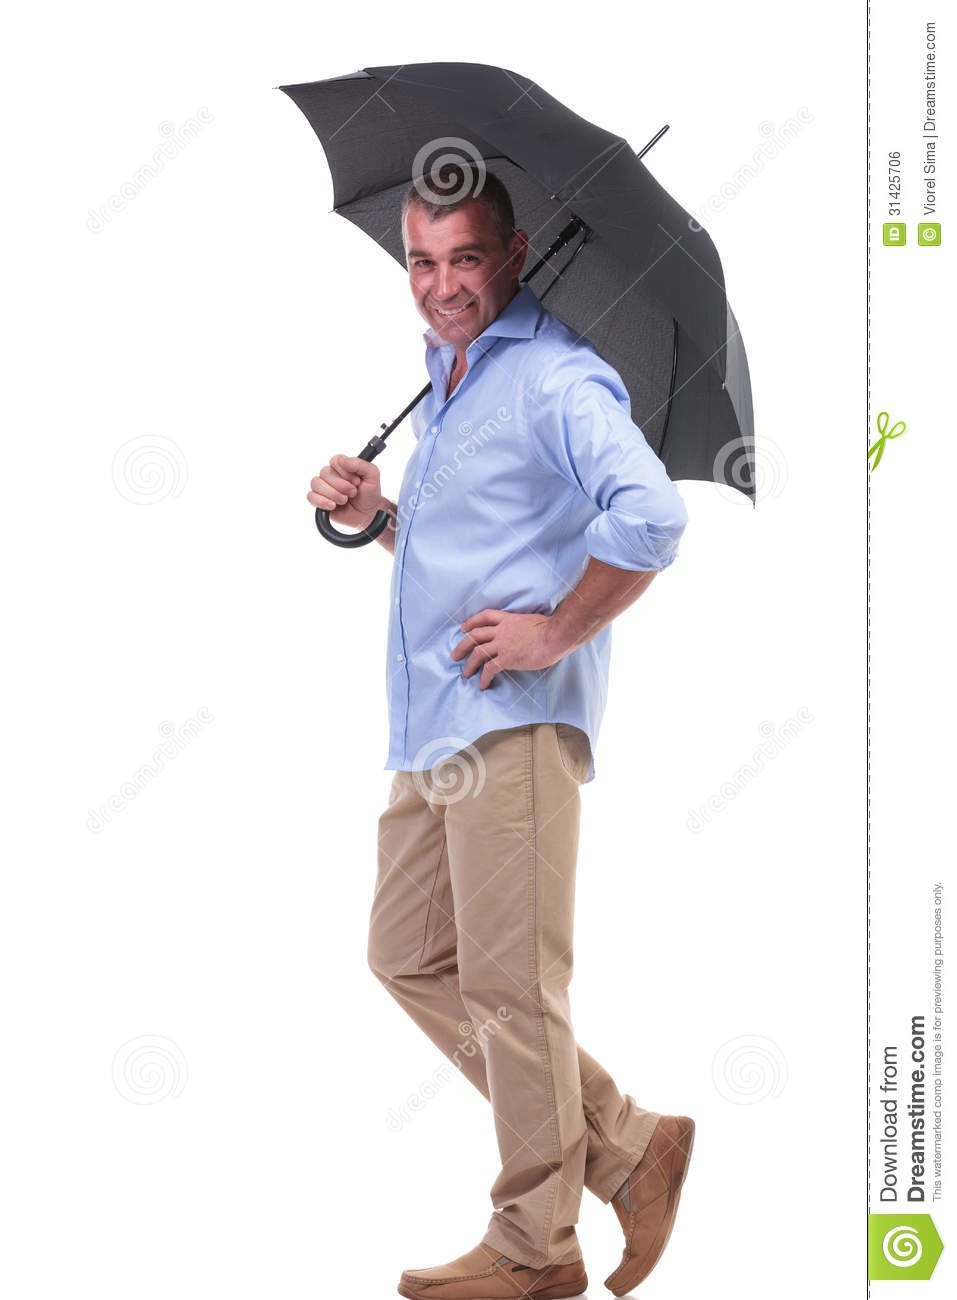 a0f3507d4224 Full length picture of a casual senior man holding an opened umbrella on his  shoulder and a hand on his hip while smiling for the camera. isolated on  white ...